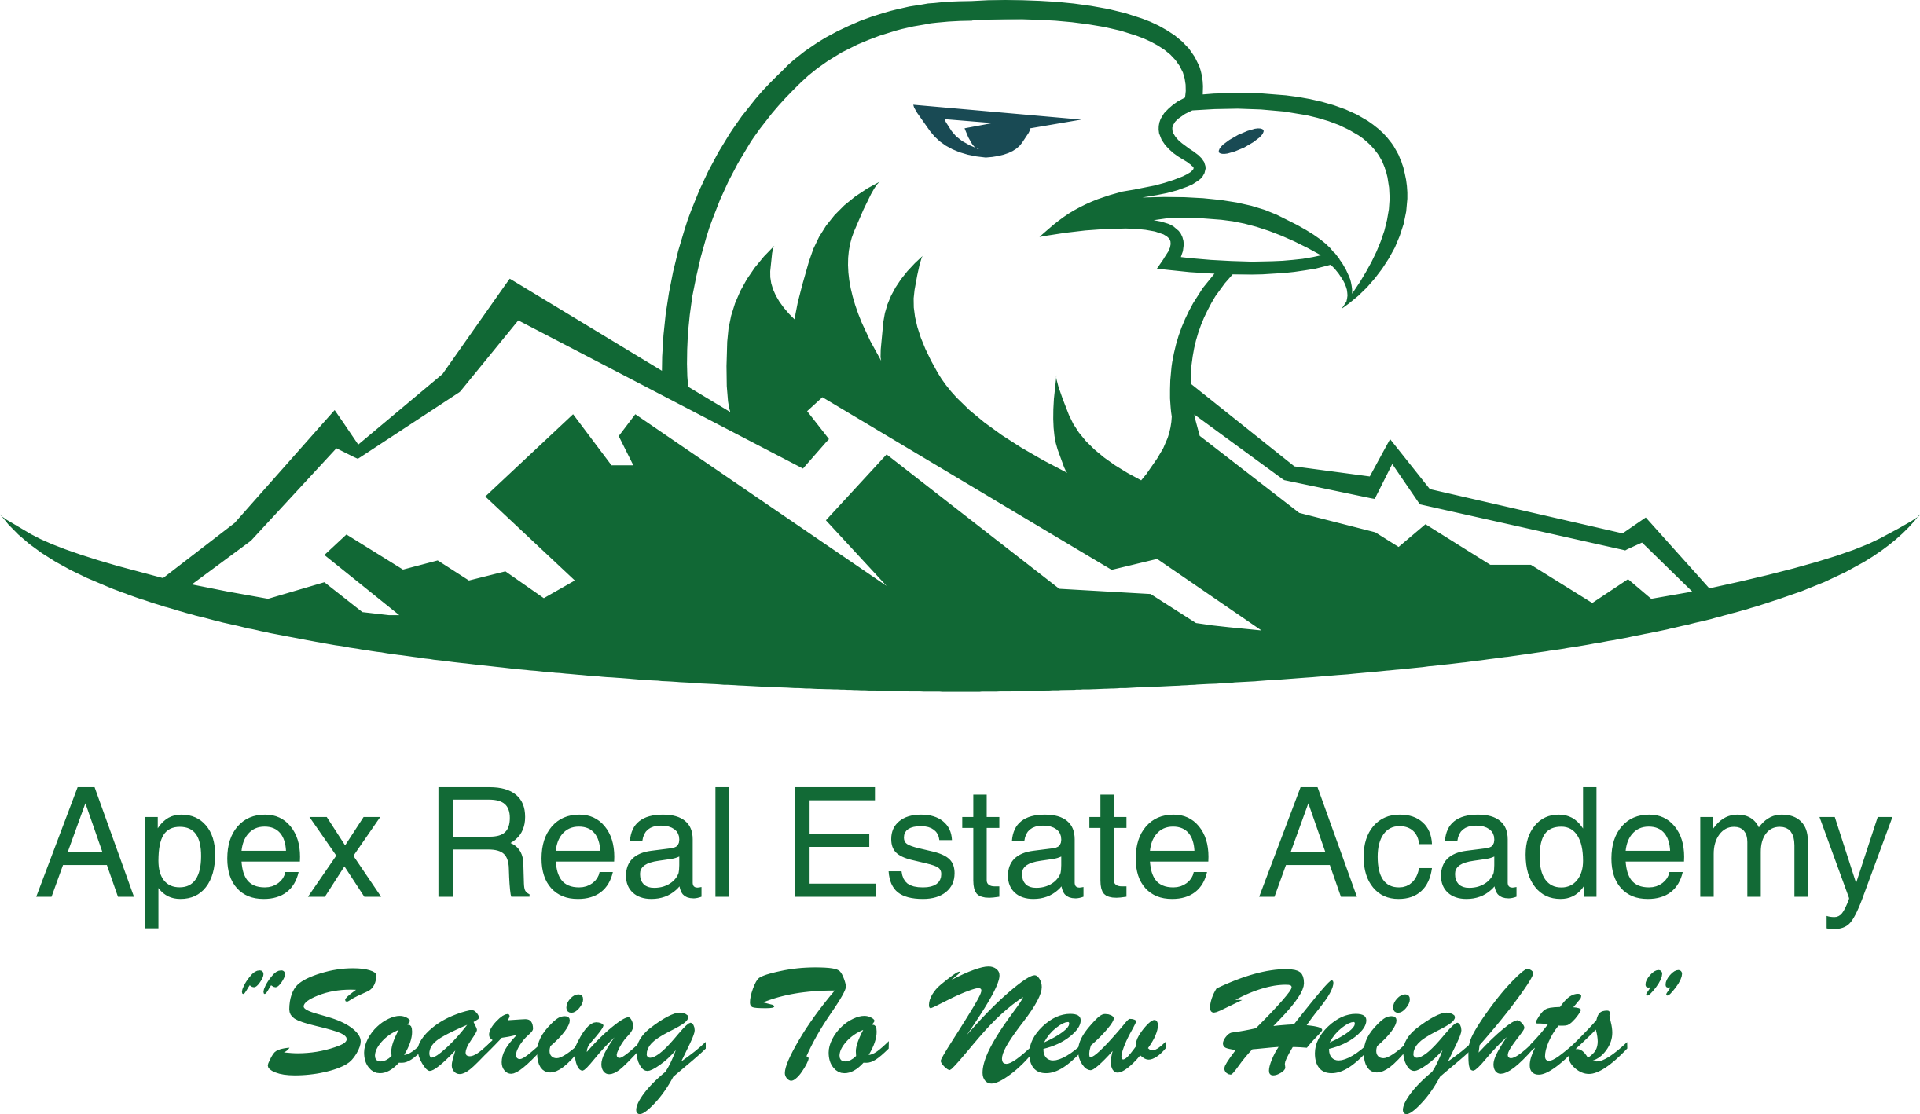 APEX REAL ESTATE ACADEMY